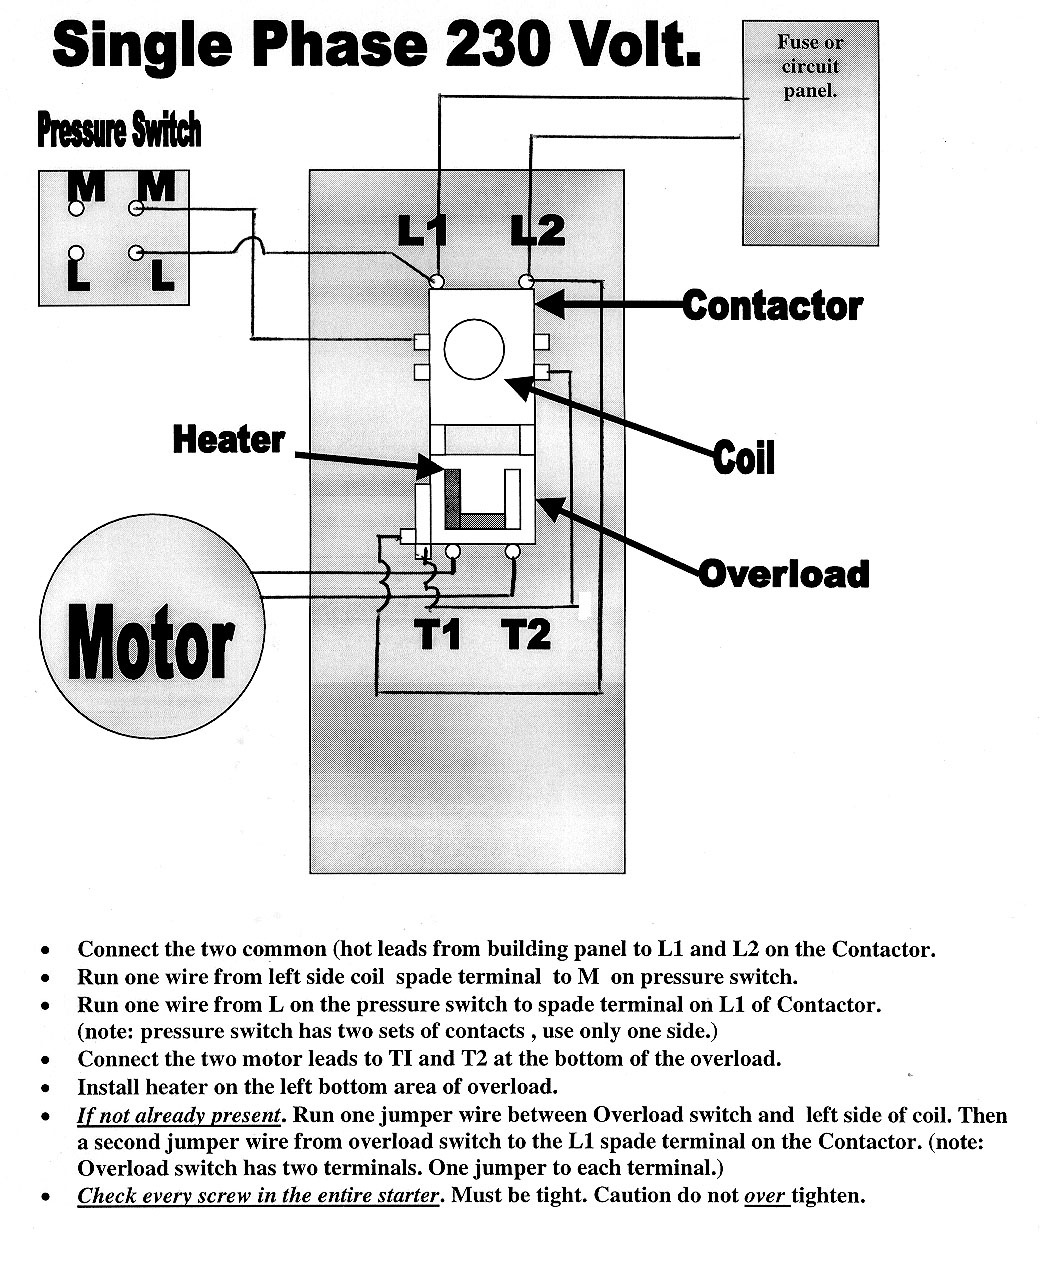 Single Phase 240 Volt Residential Wiring Diagram | Wiring Diagram - 3 Phase To Single Phase Wiring Diagram